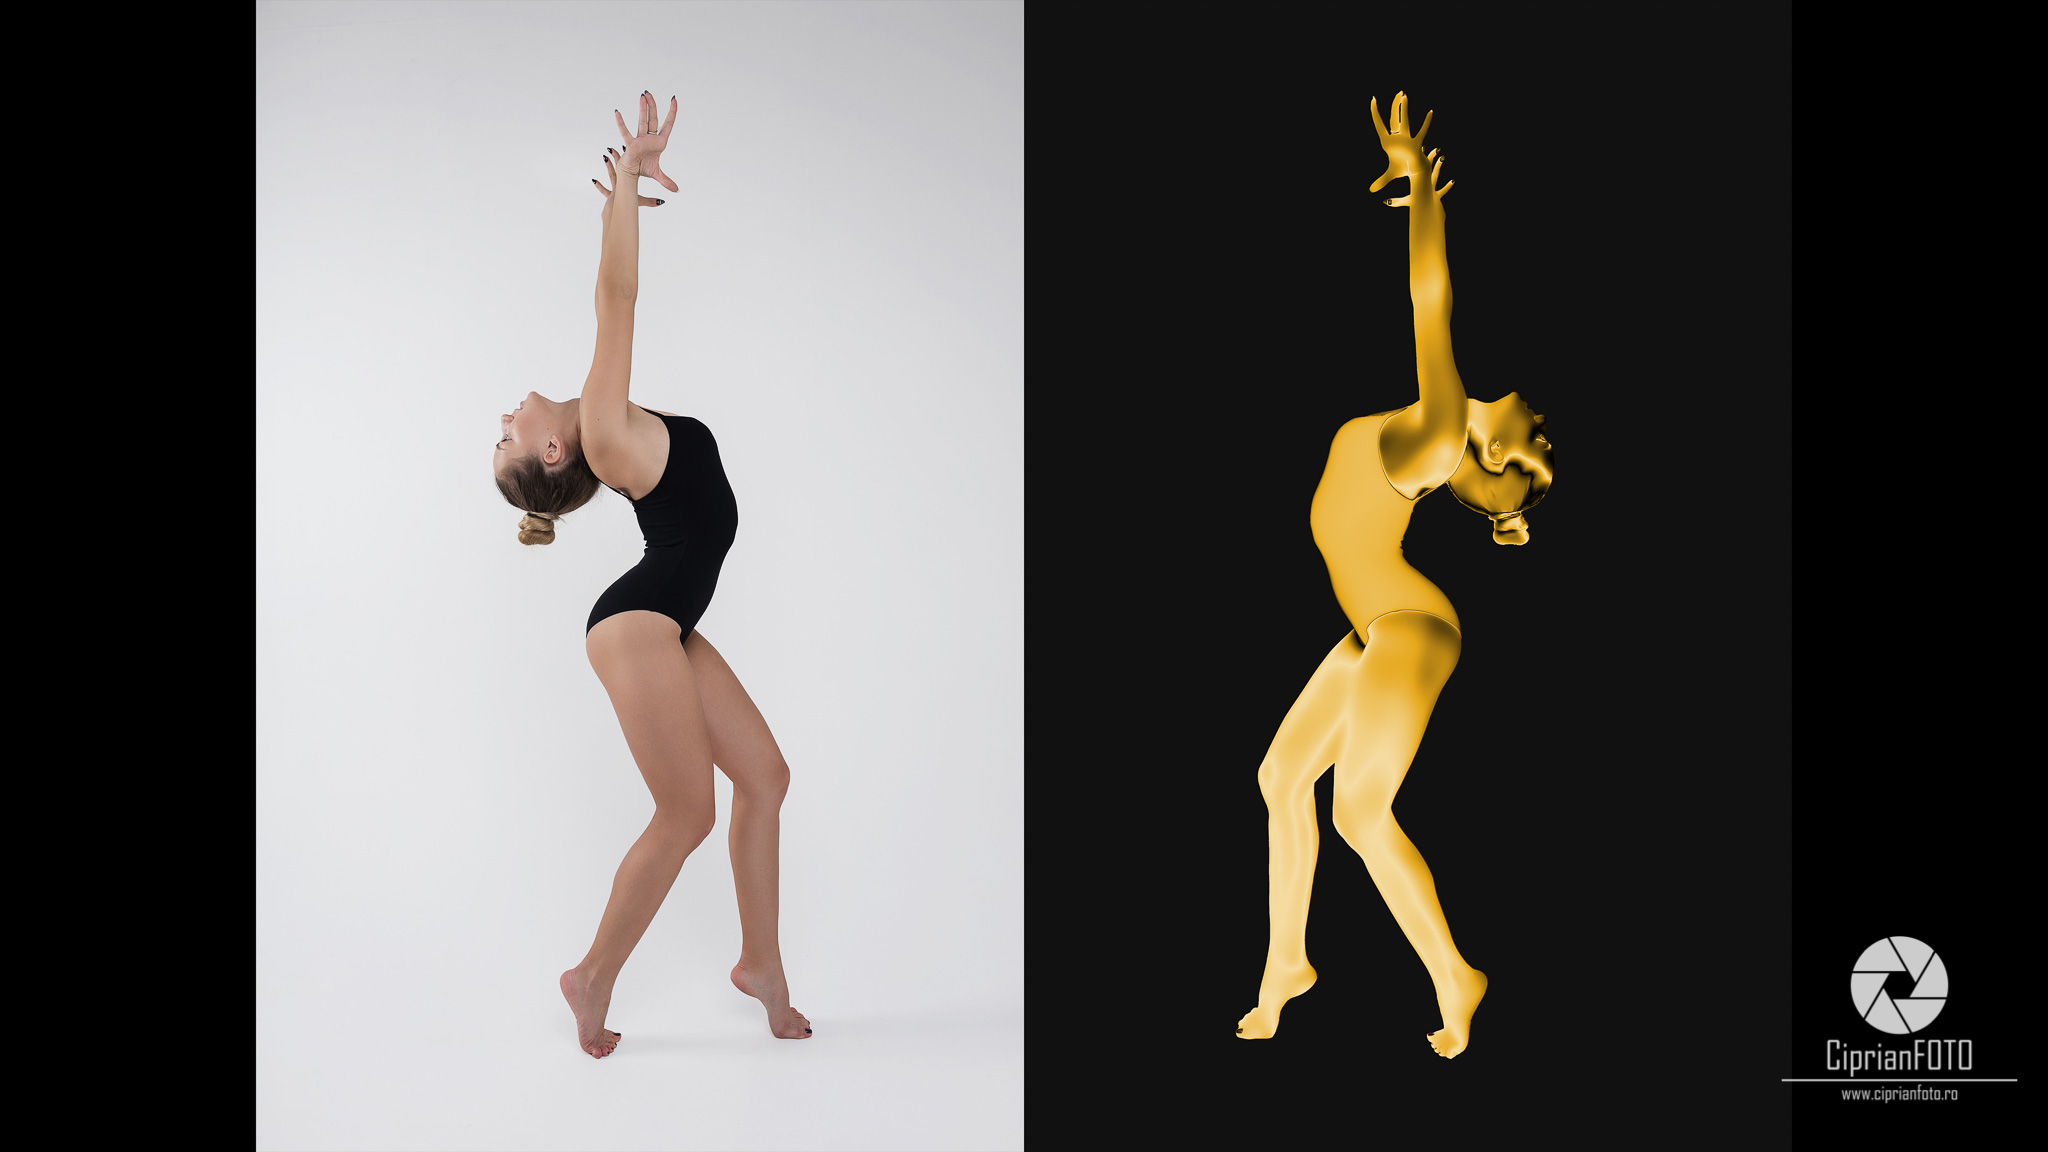 How To Turn, Photography, Into, Gold Statue, In Adobe Photoshop, Photoshop CC 2020 Tutorial, CiprianFOTO Ciprian FOTO, Photoshop Tutorial Ideas